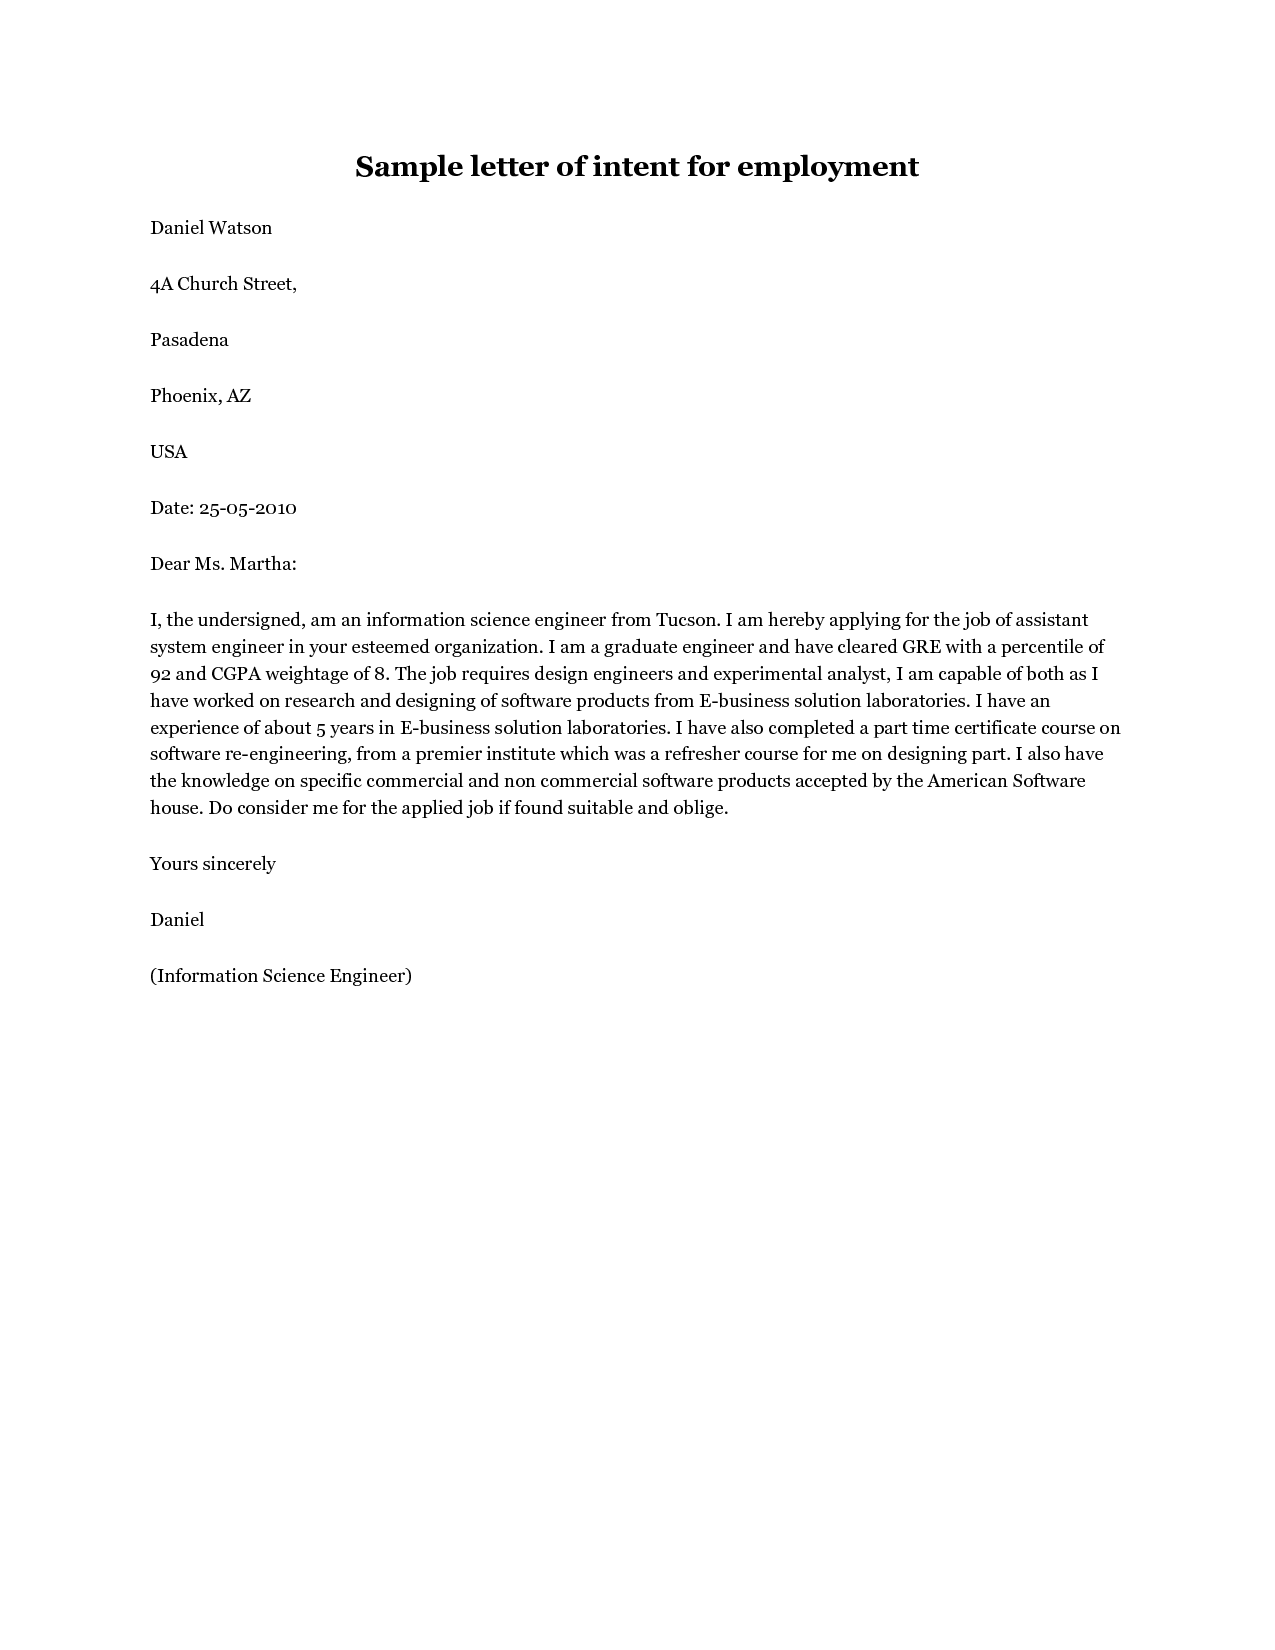 sample letter of intent job application sample letter of intent